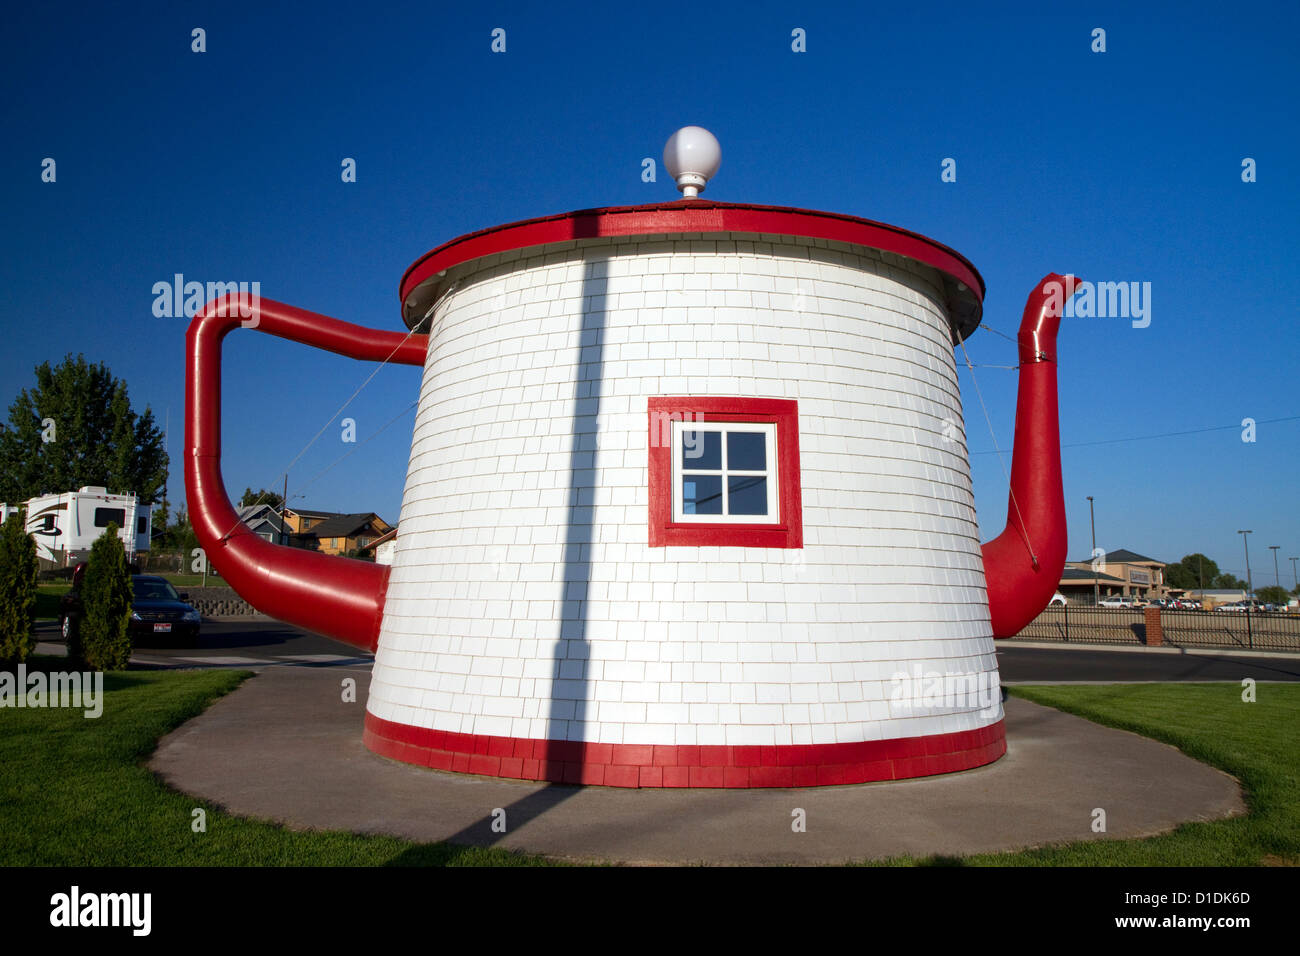 Teapot Dome Service Station roadside attraction at Zillah, Washington, USA - Stock Image